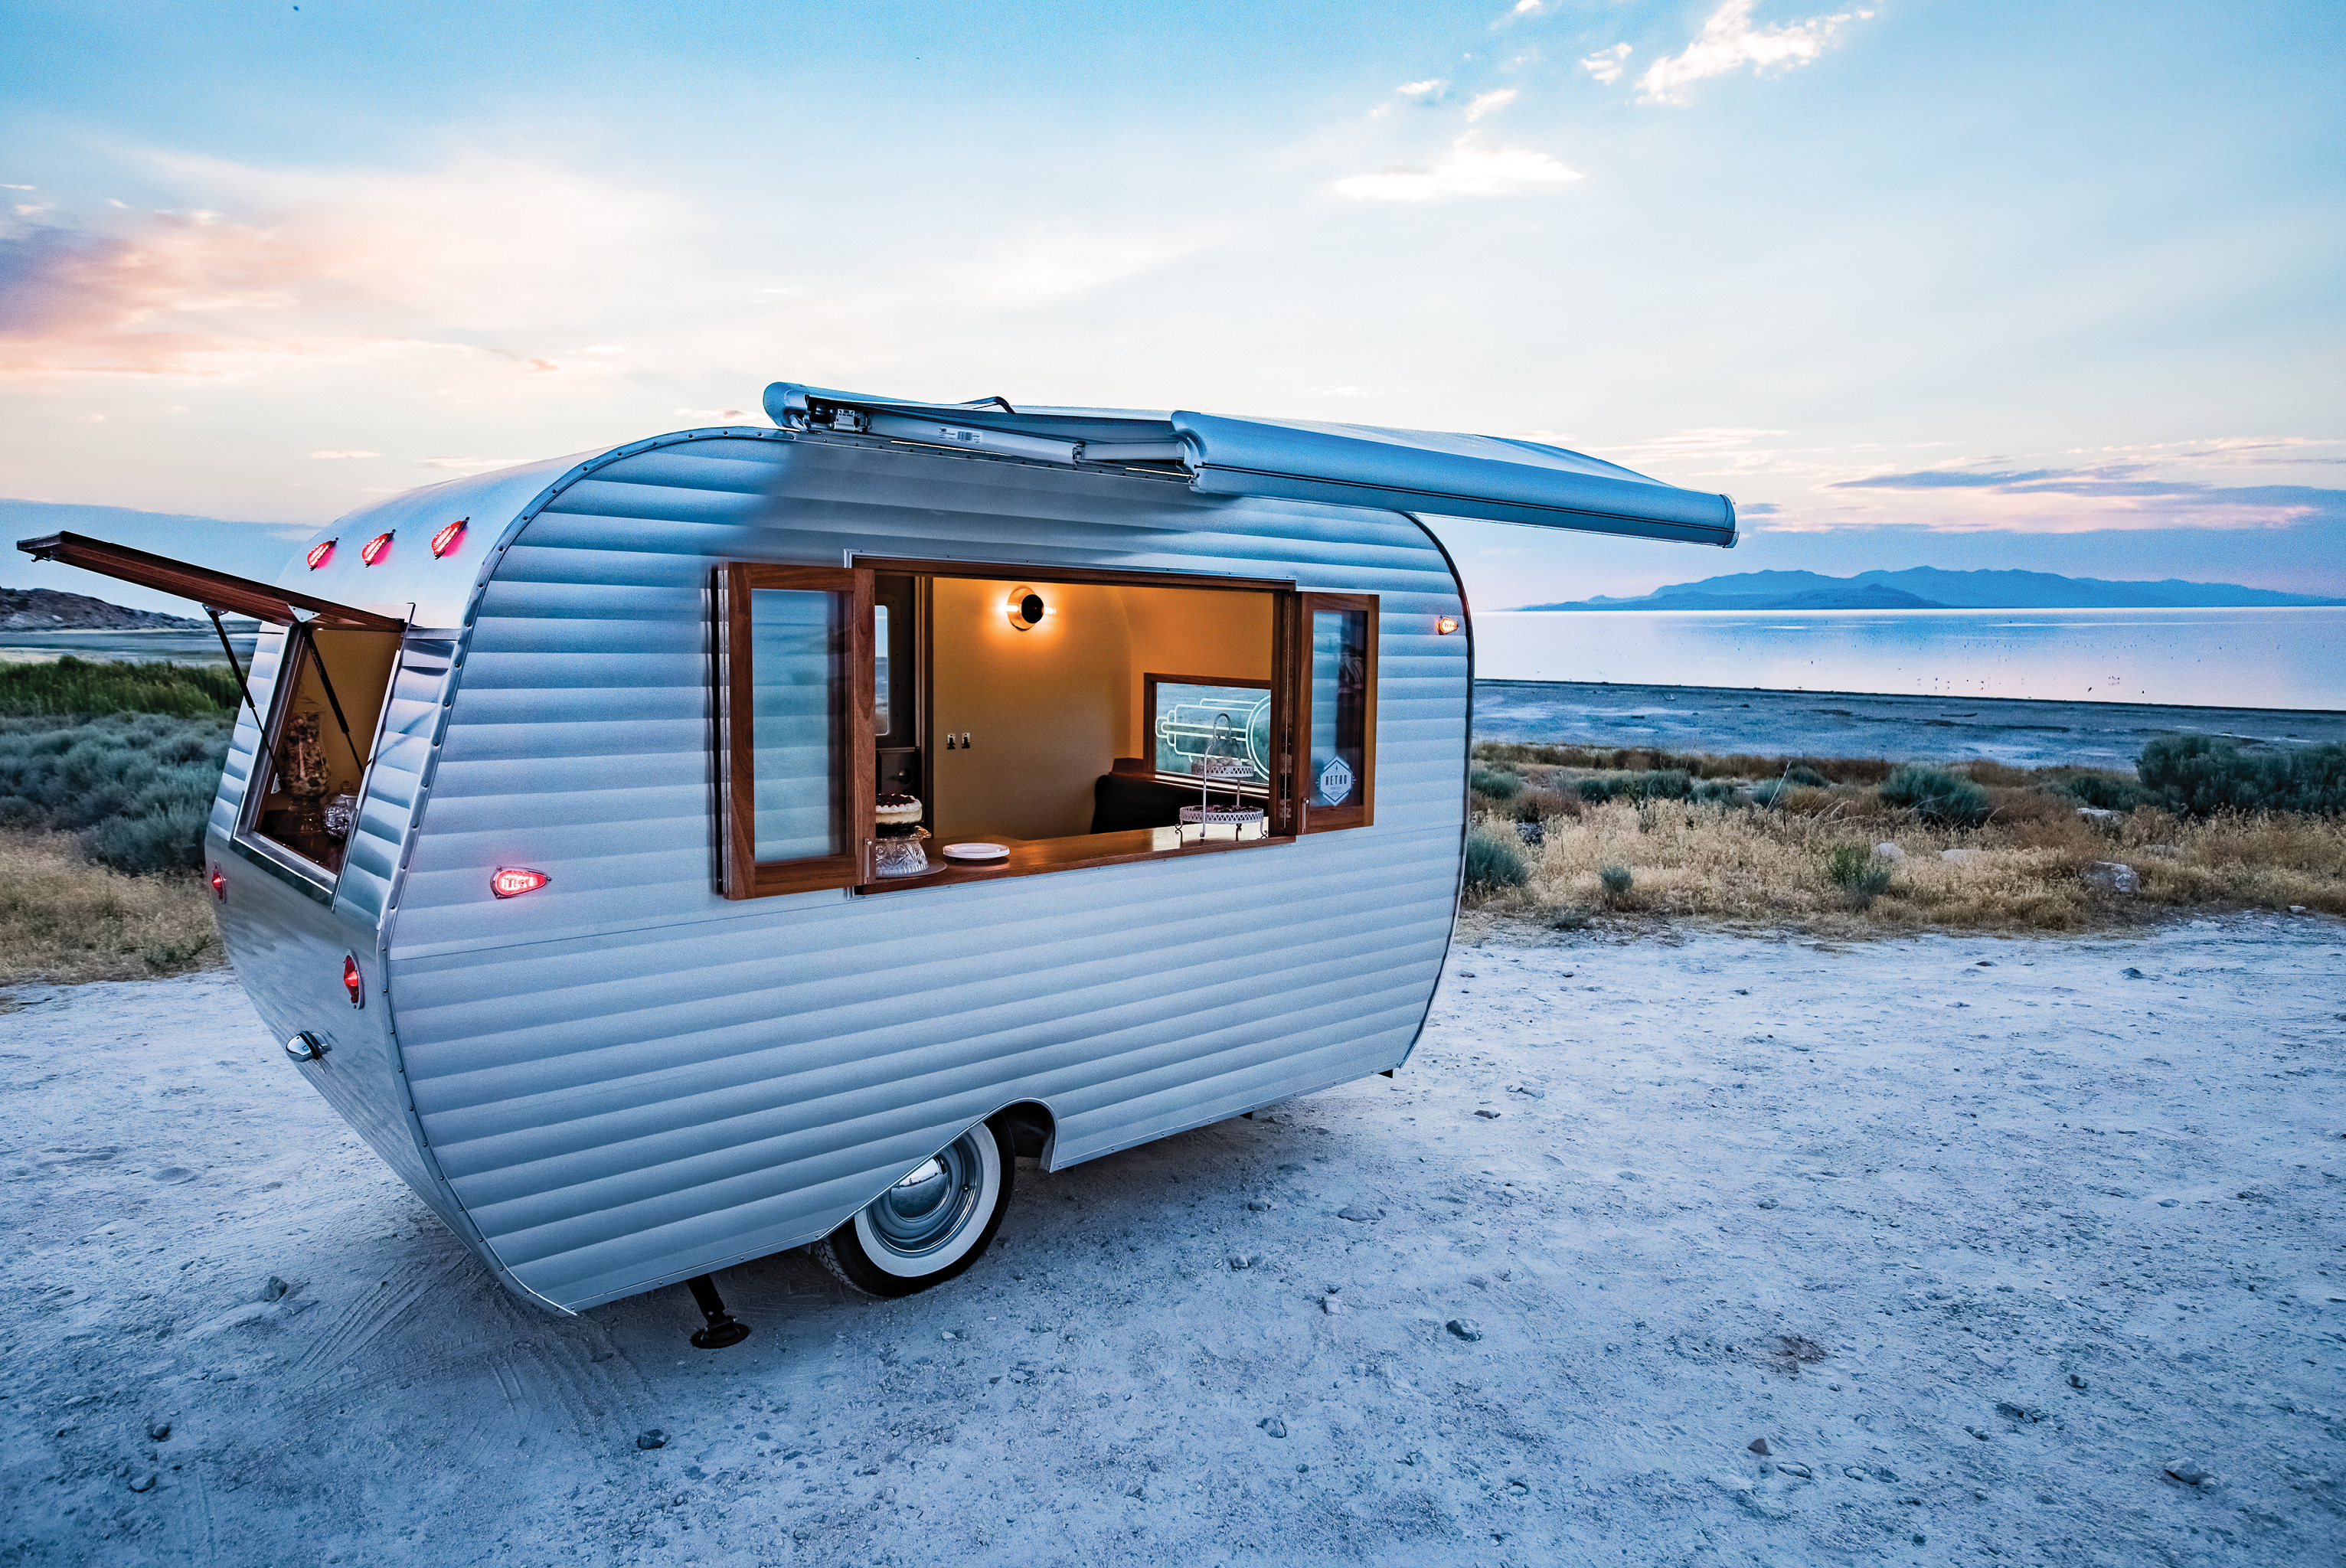 AIRSTREAMS MADE NEW